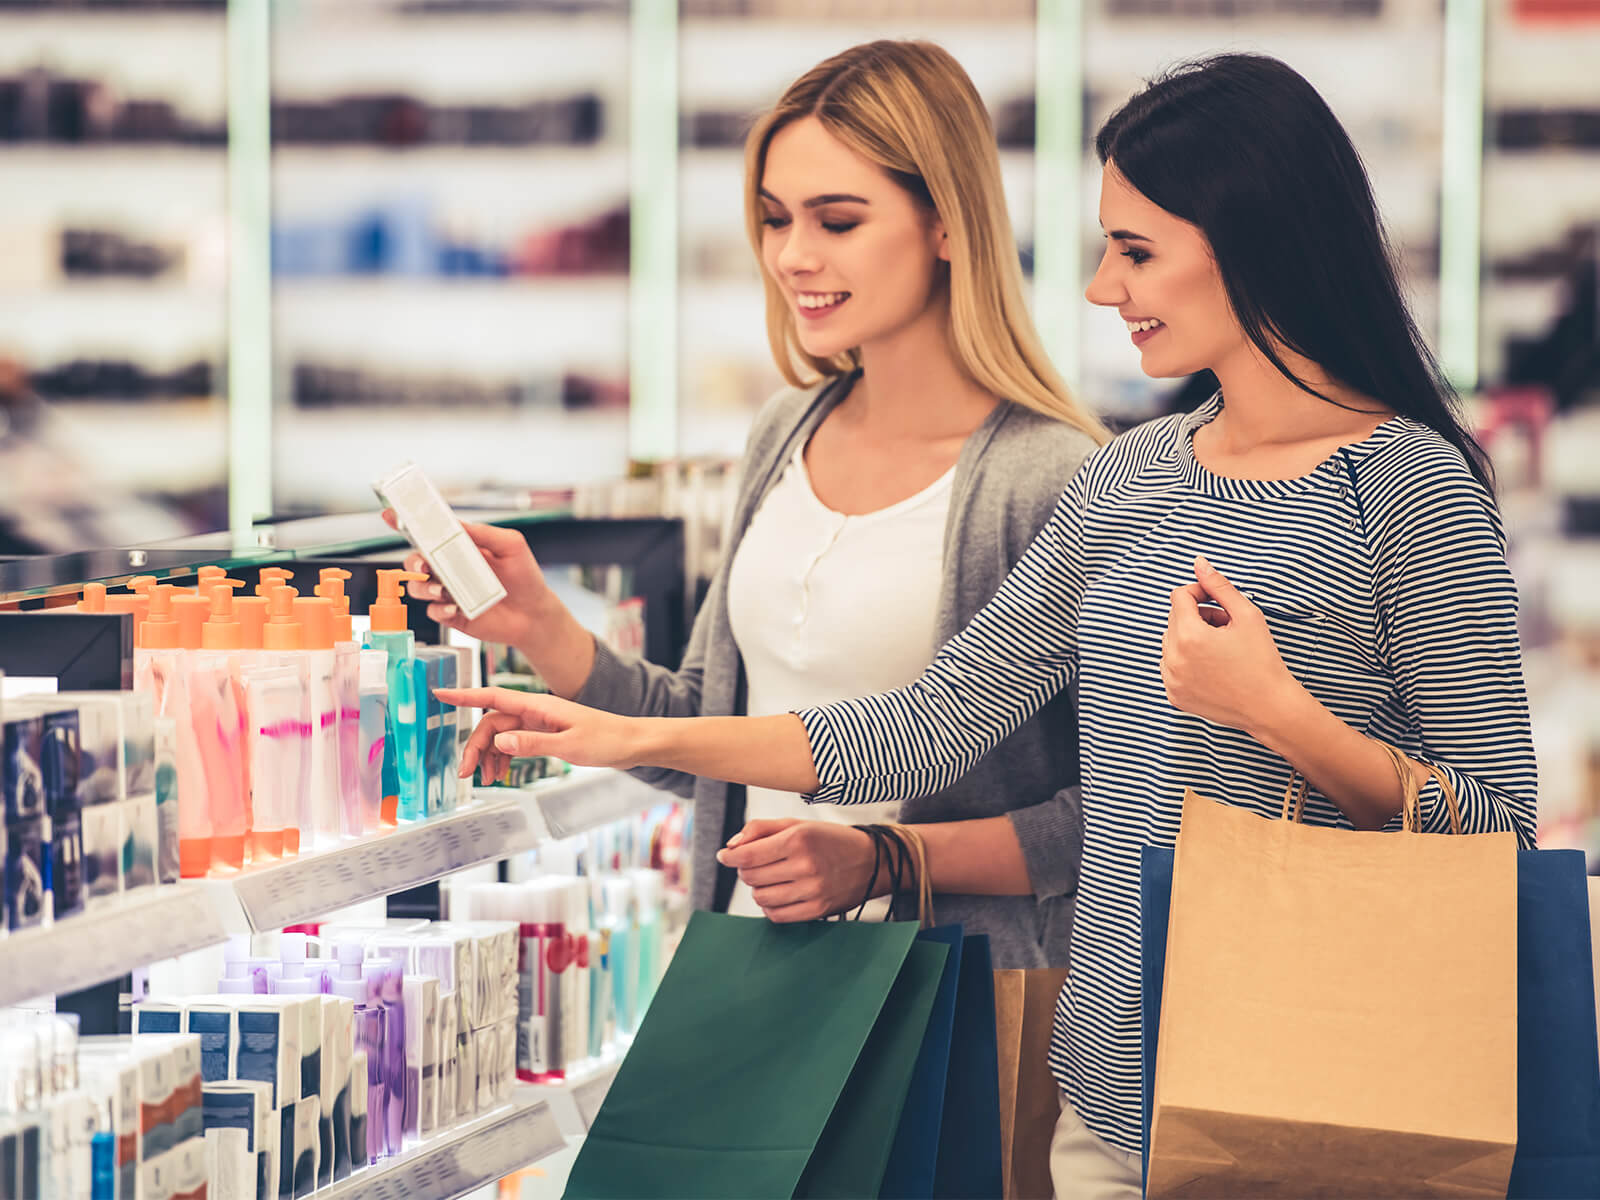 Point of sale software for Health and Beauty Brands by PredictSpring